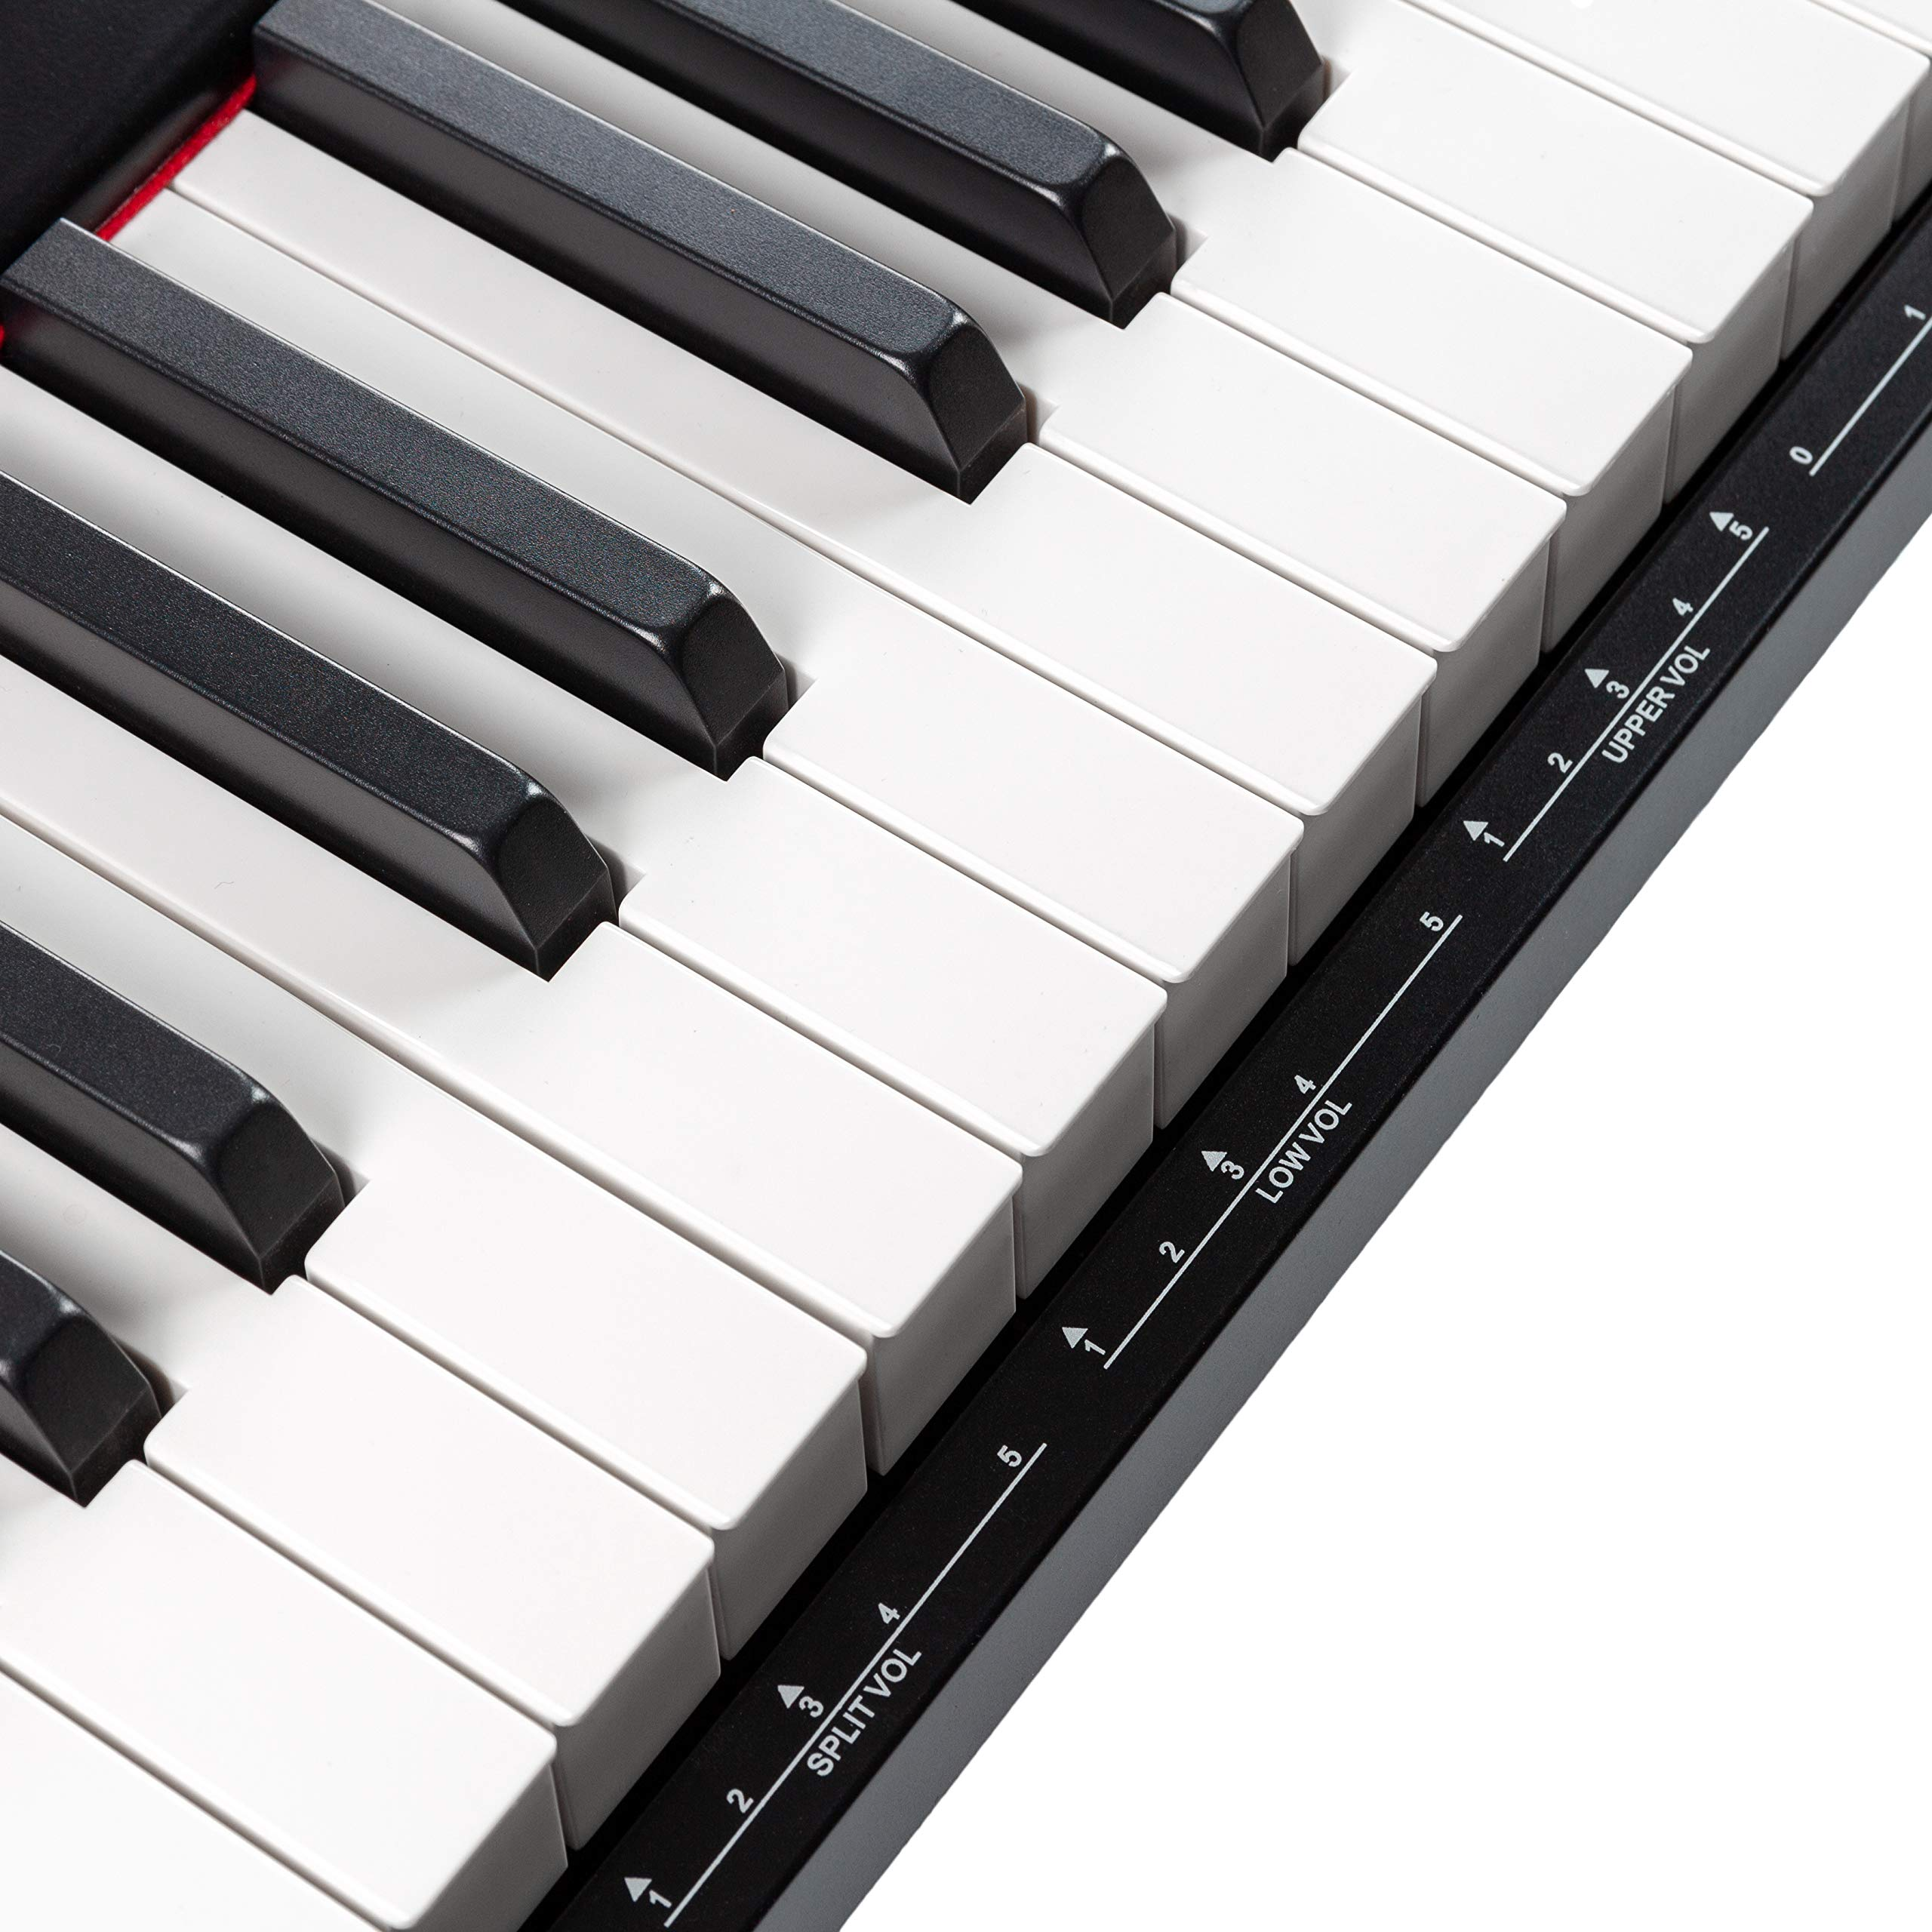 RockJam 88-Key Beginner Digital Piano with Full-Size Semi-Weighted Keys, Power Supply, Simply Piano App Content & Key Note Stickers by RockJam (Image #6)